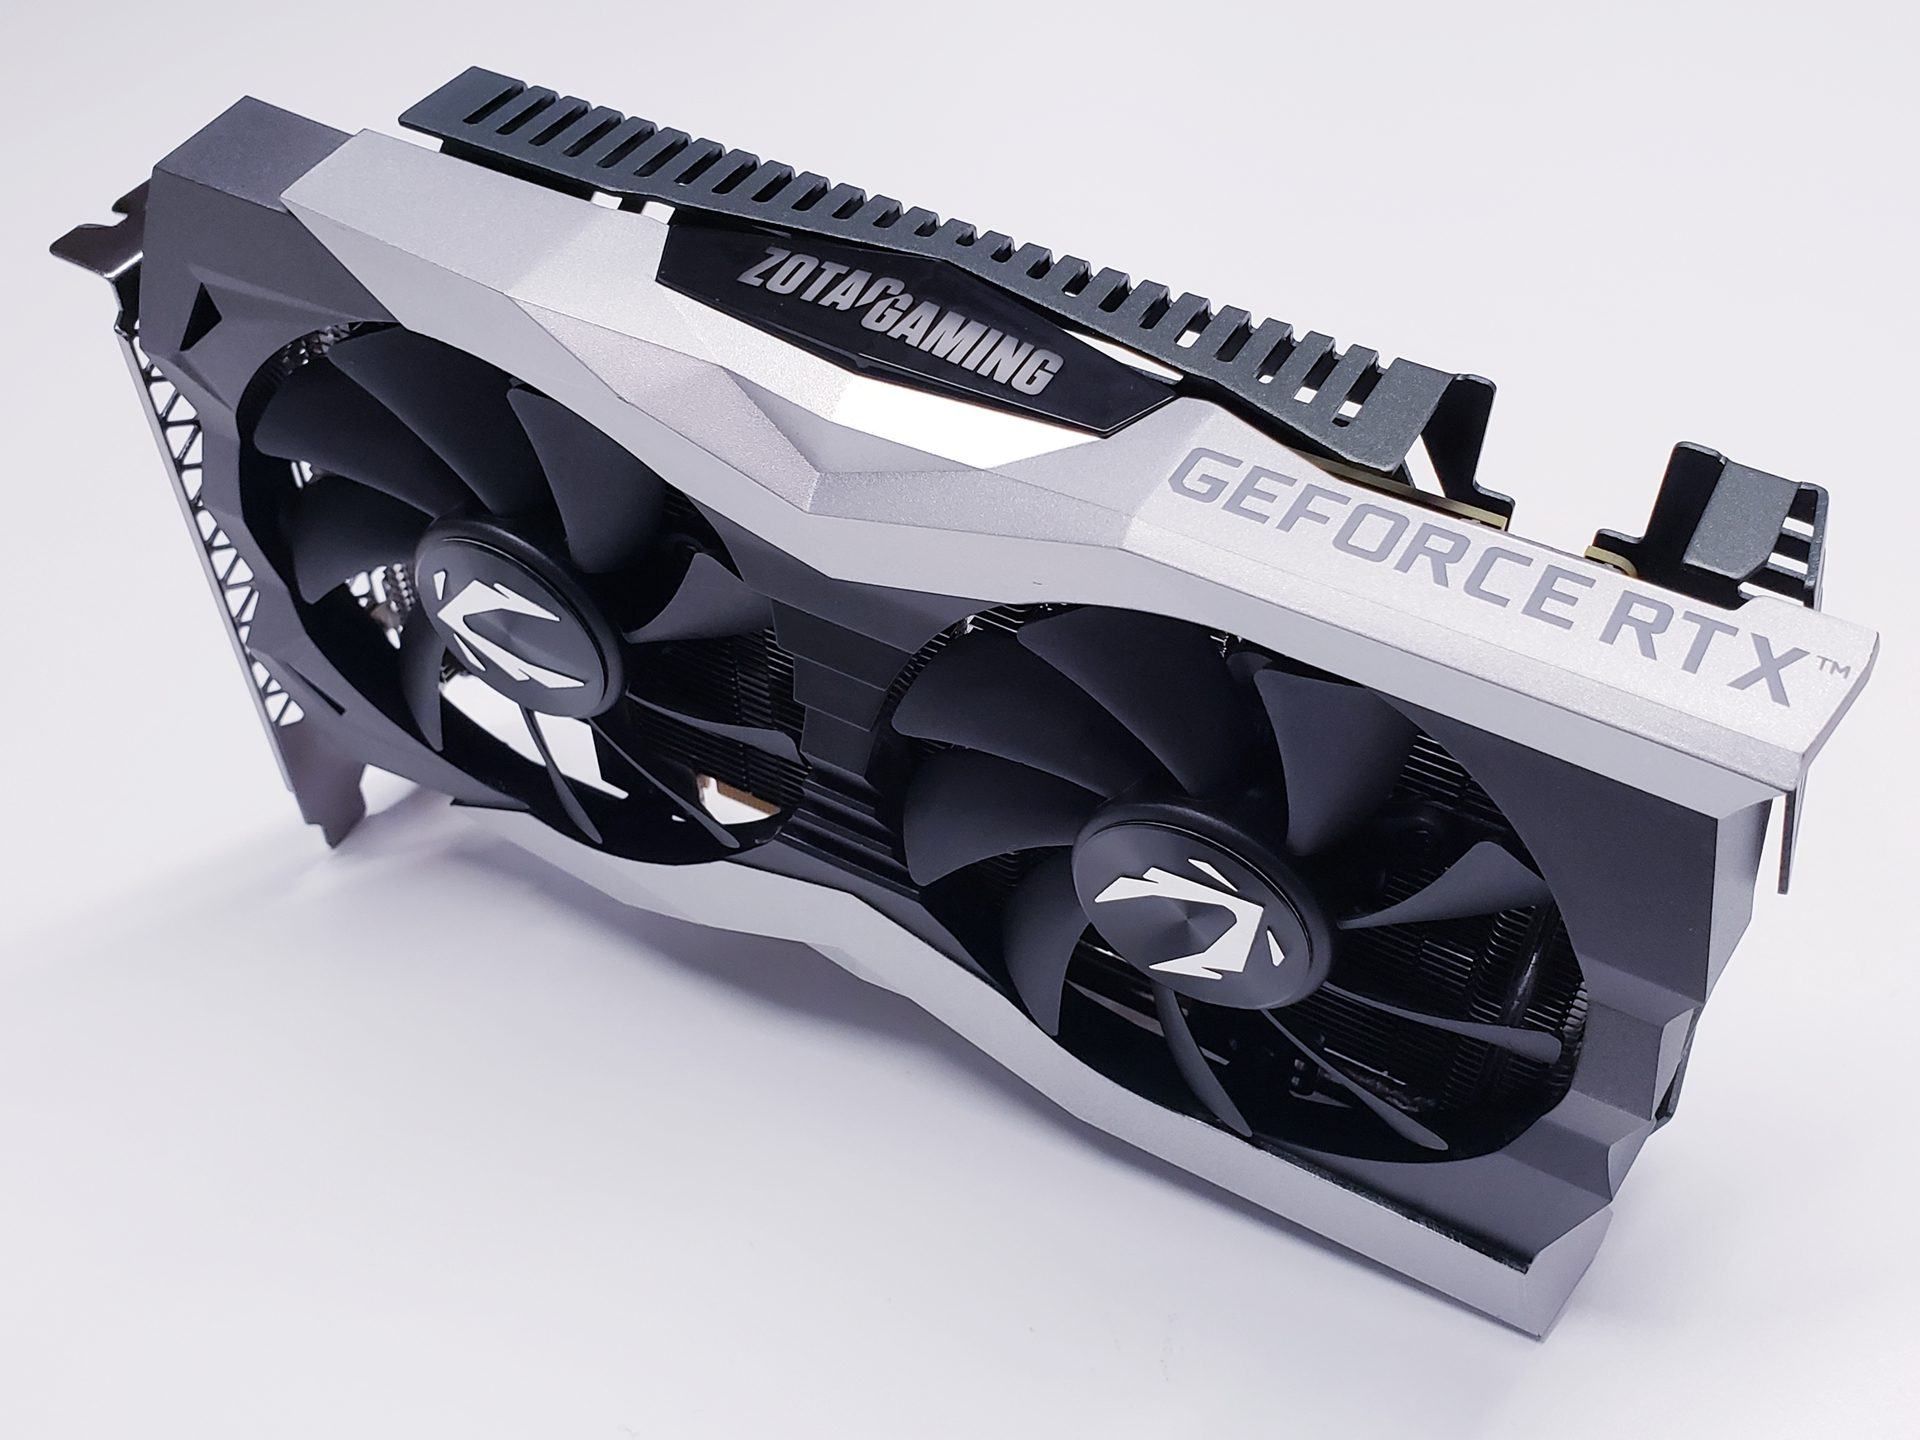 ZOTAC GAMING GeForce RTX 2060 AMP (6GB GDDR6) Review - Page